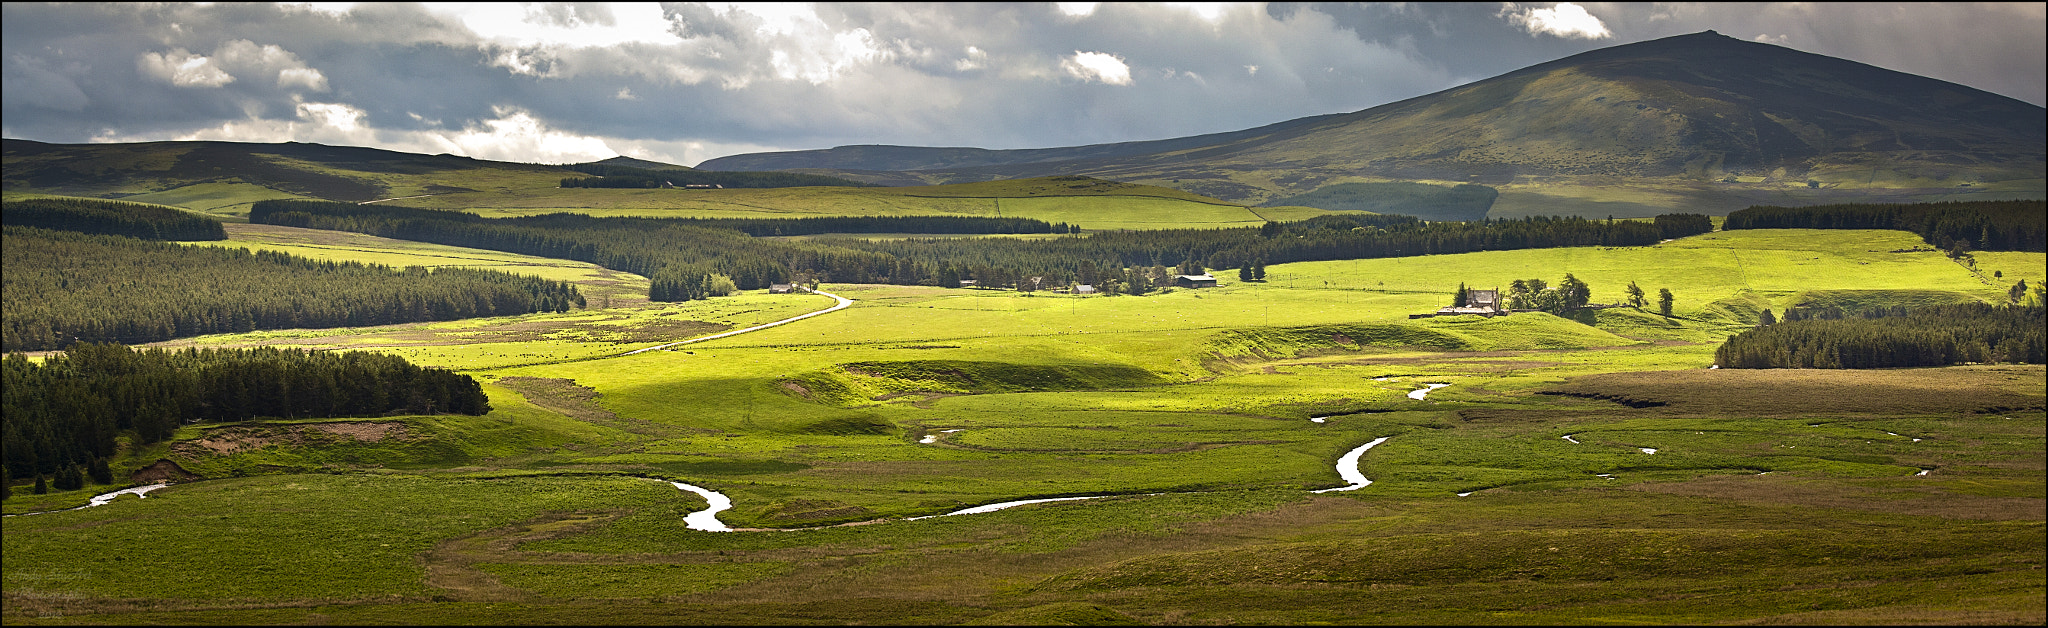 Photograph Cabrach and The Buck by Andy Stuart on 500px